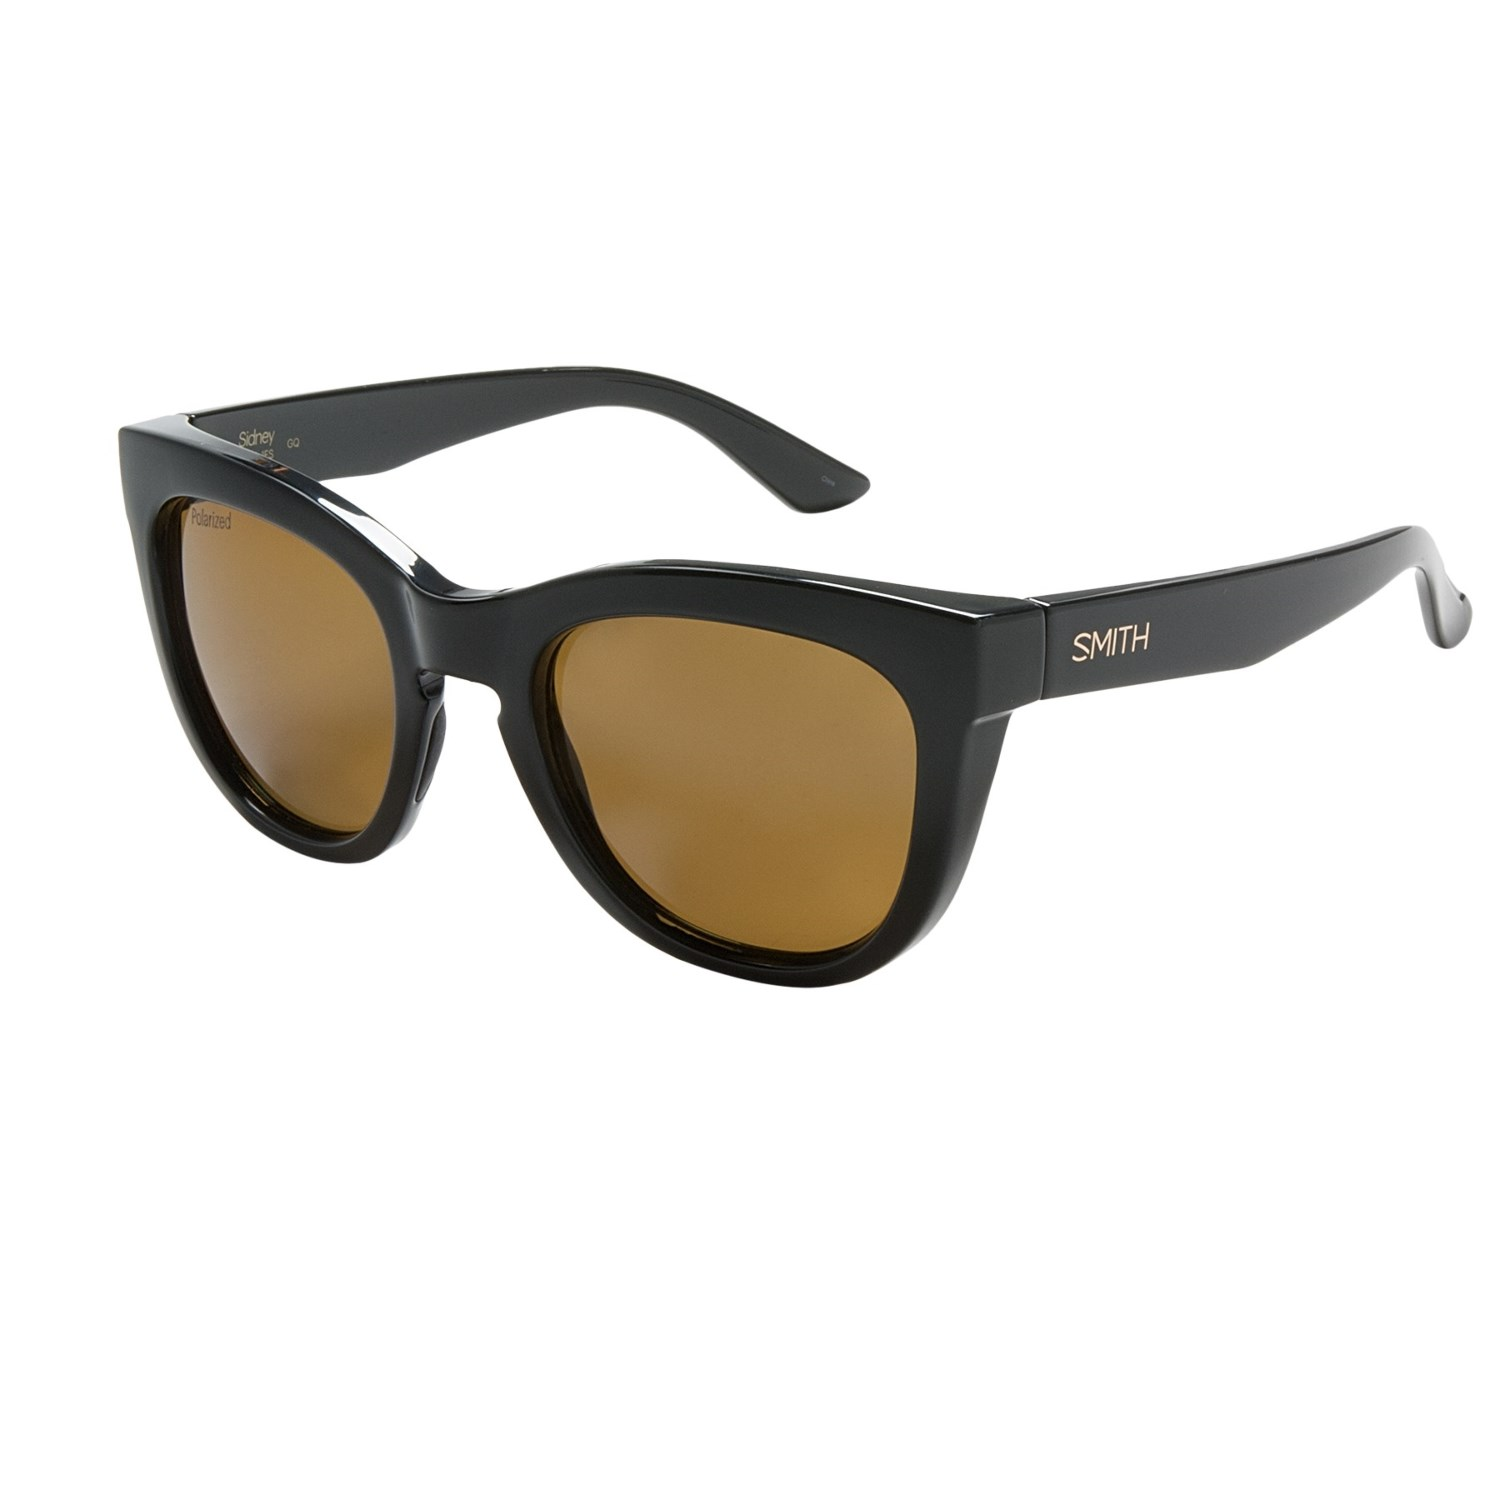 7bdff987dd0 Smith Rambler Polarized Sunglasses Review